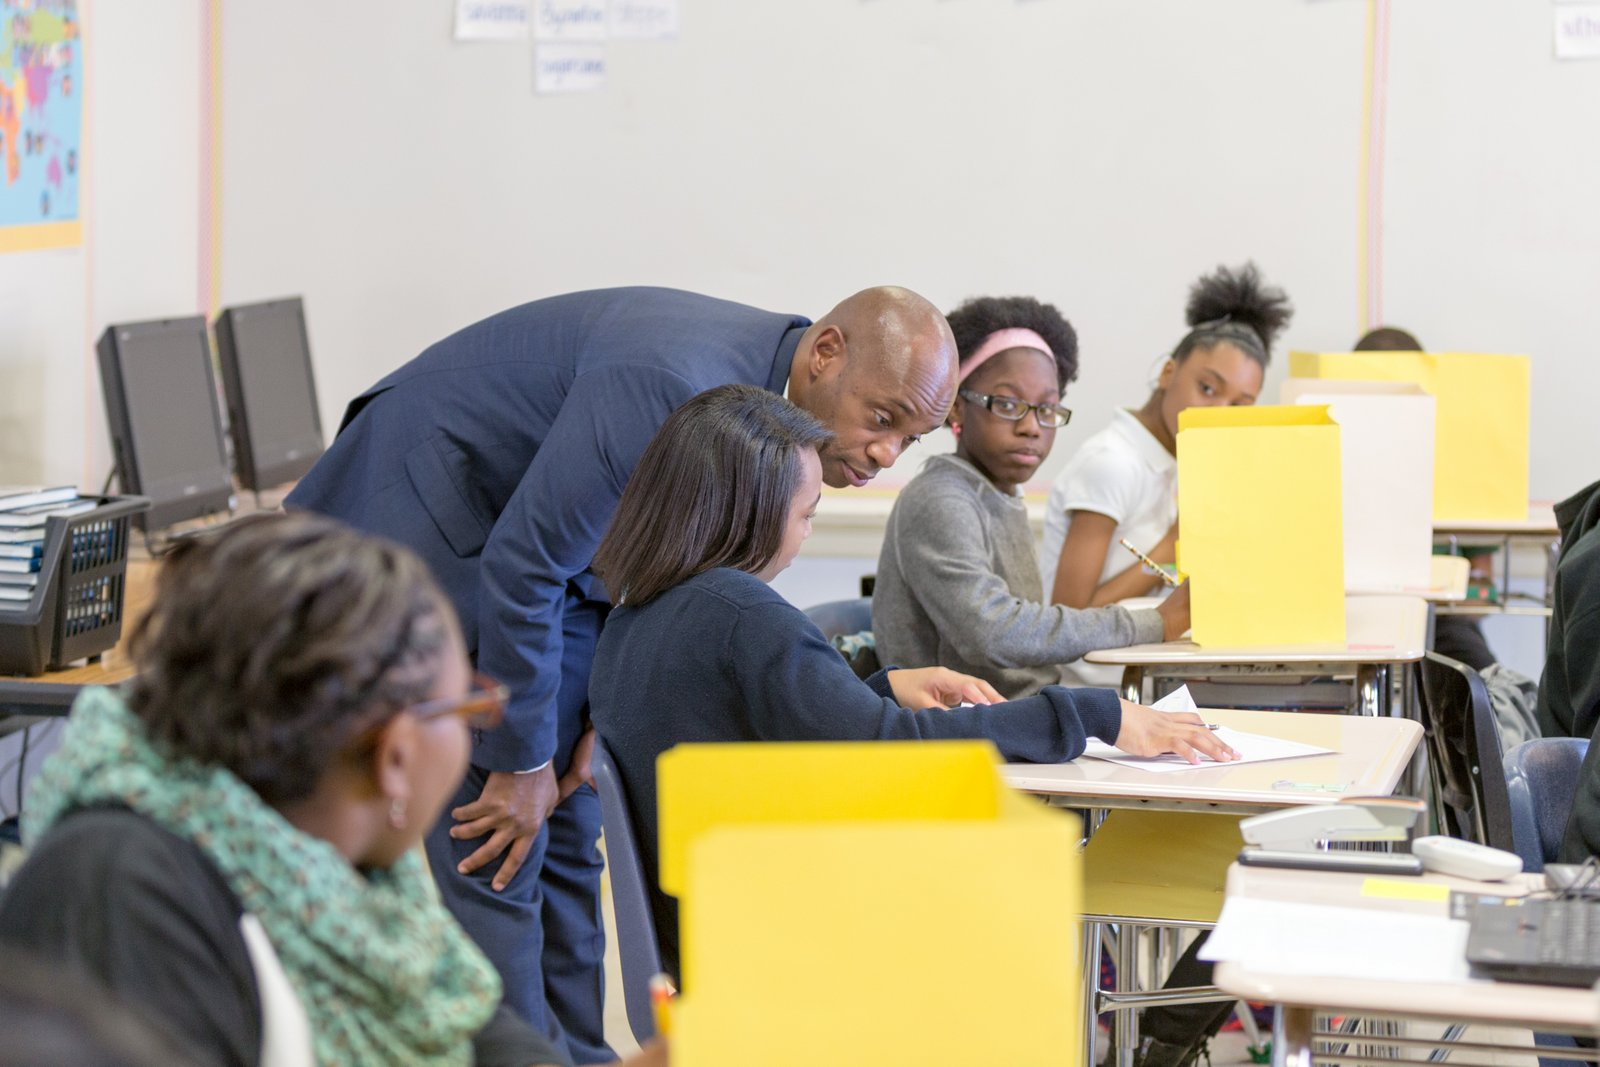 """Superintendent Dorsey Hopson visits classrooms and students at Snowden School in Memphis. Hopson has proposed $50 million in cuts to staffing and programs for Shelby County Schools and describes the school system's financial situation as """"dire."""""""